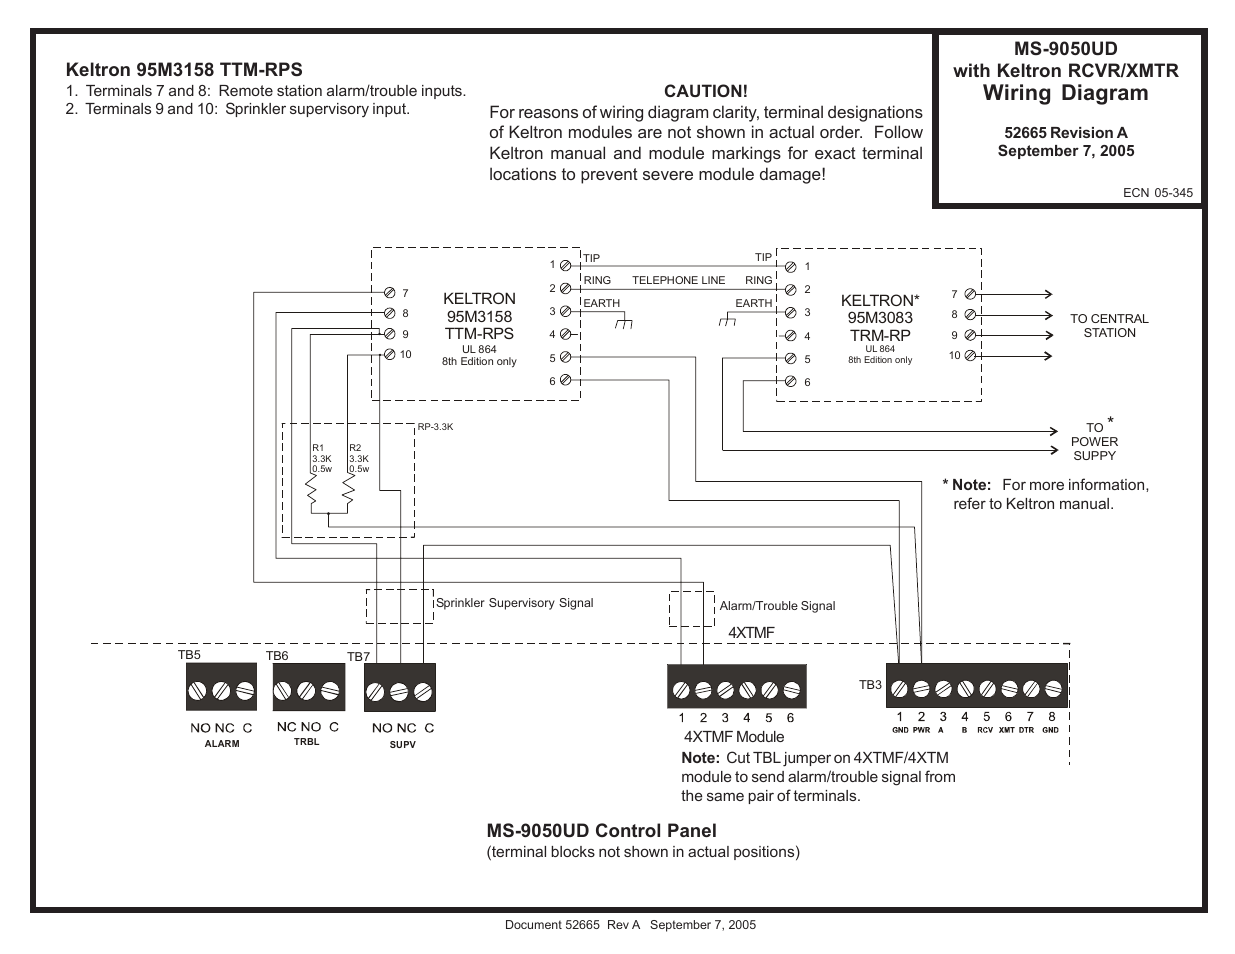 hight resolution of fire lite ms 9050ud with keltron transmitter receiver wiring diagram user manual 1 page